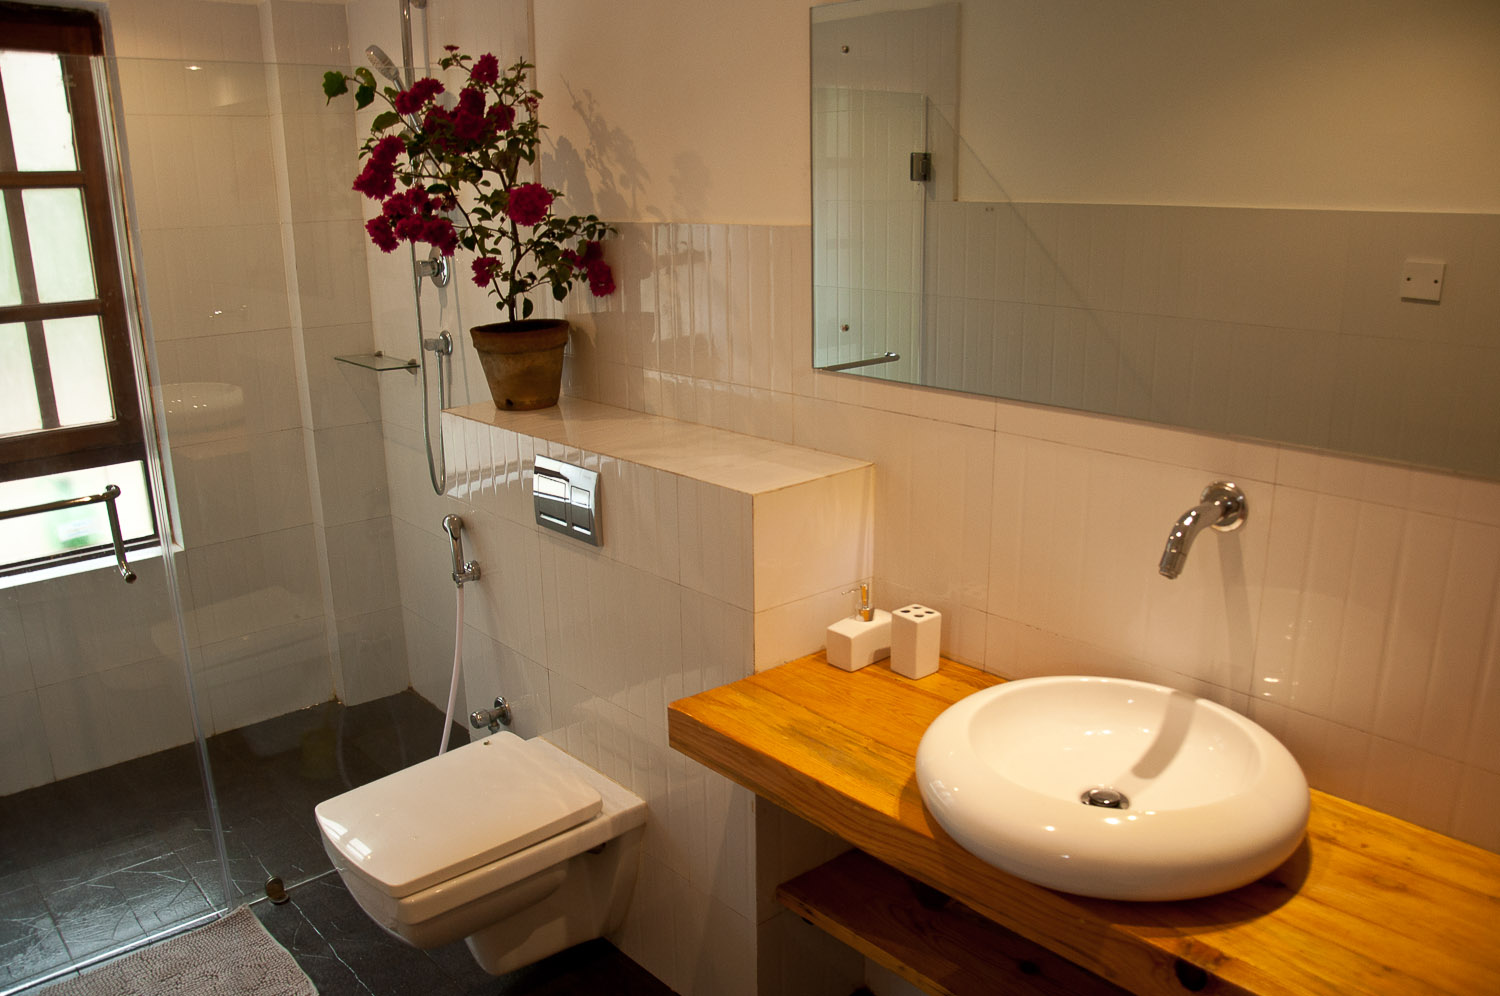 Clean and modern bathroom sink with 24 hours hot water facility.